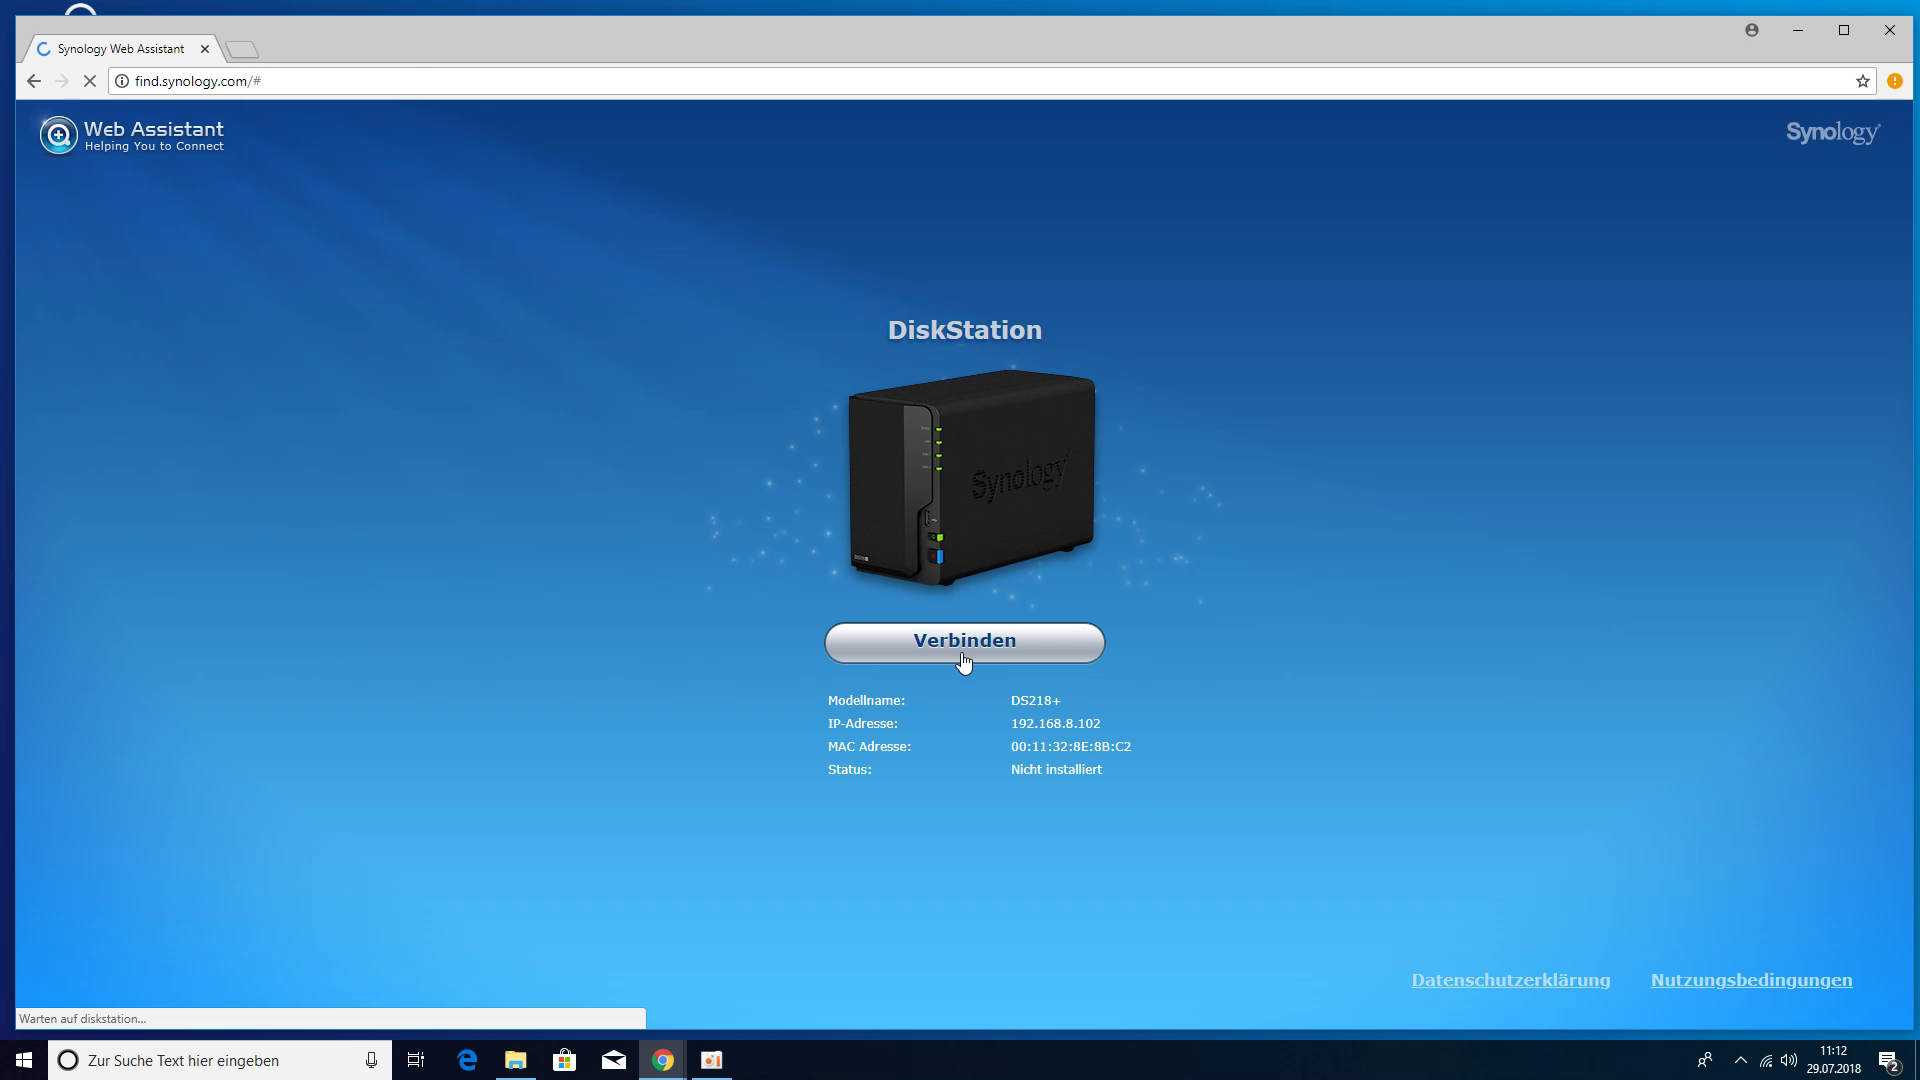 Synology DS218+ NAS - find.synology